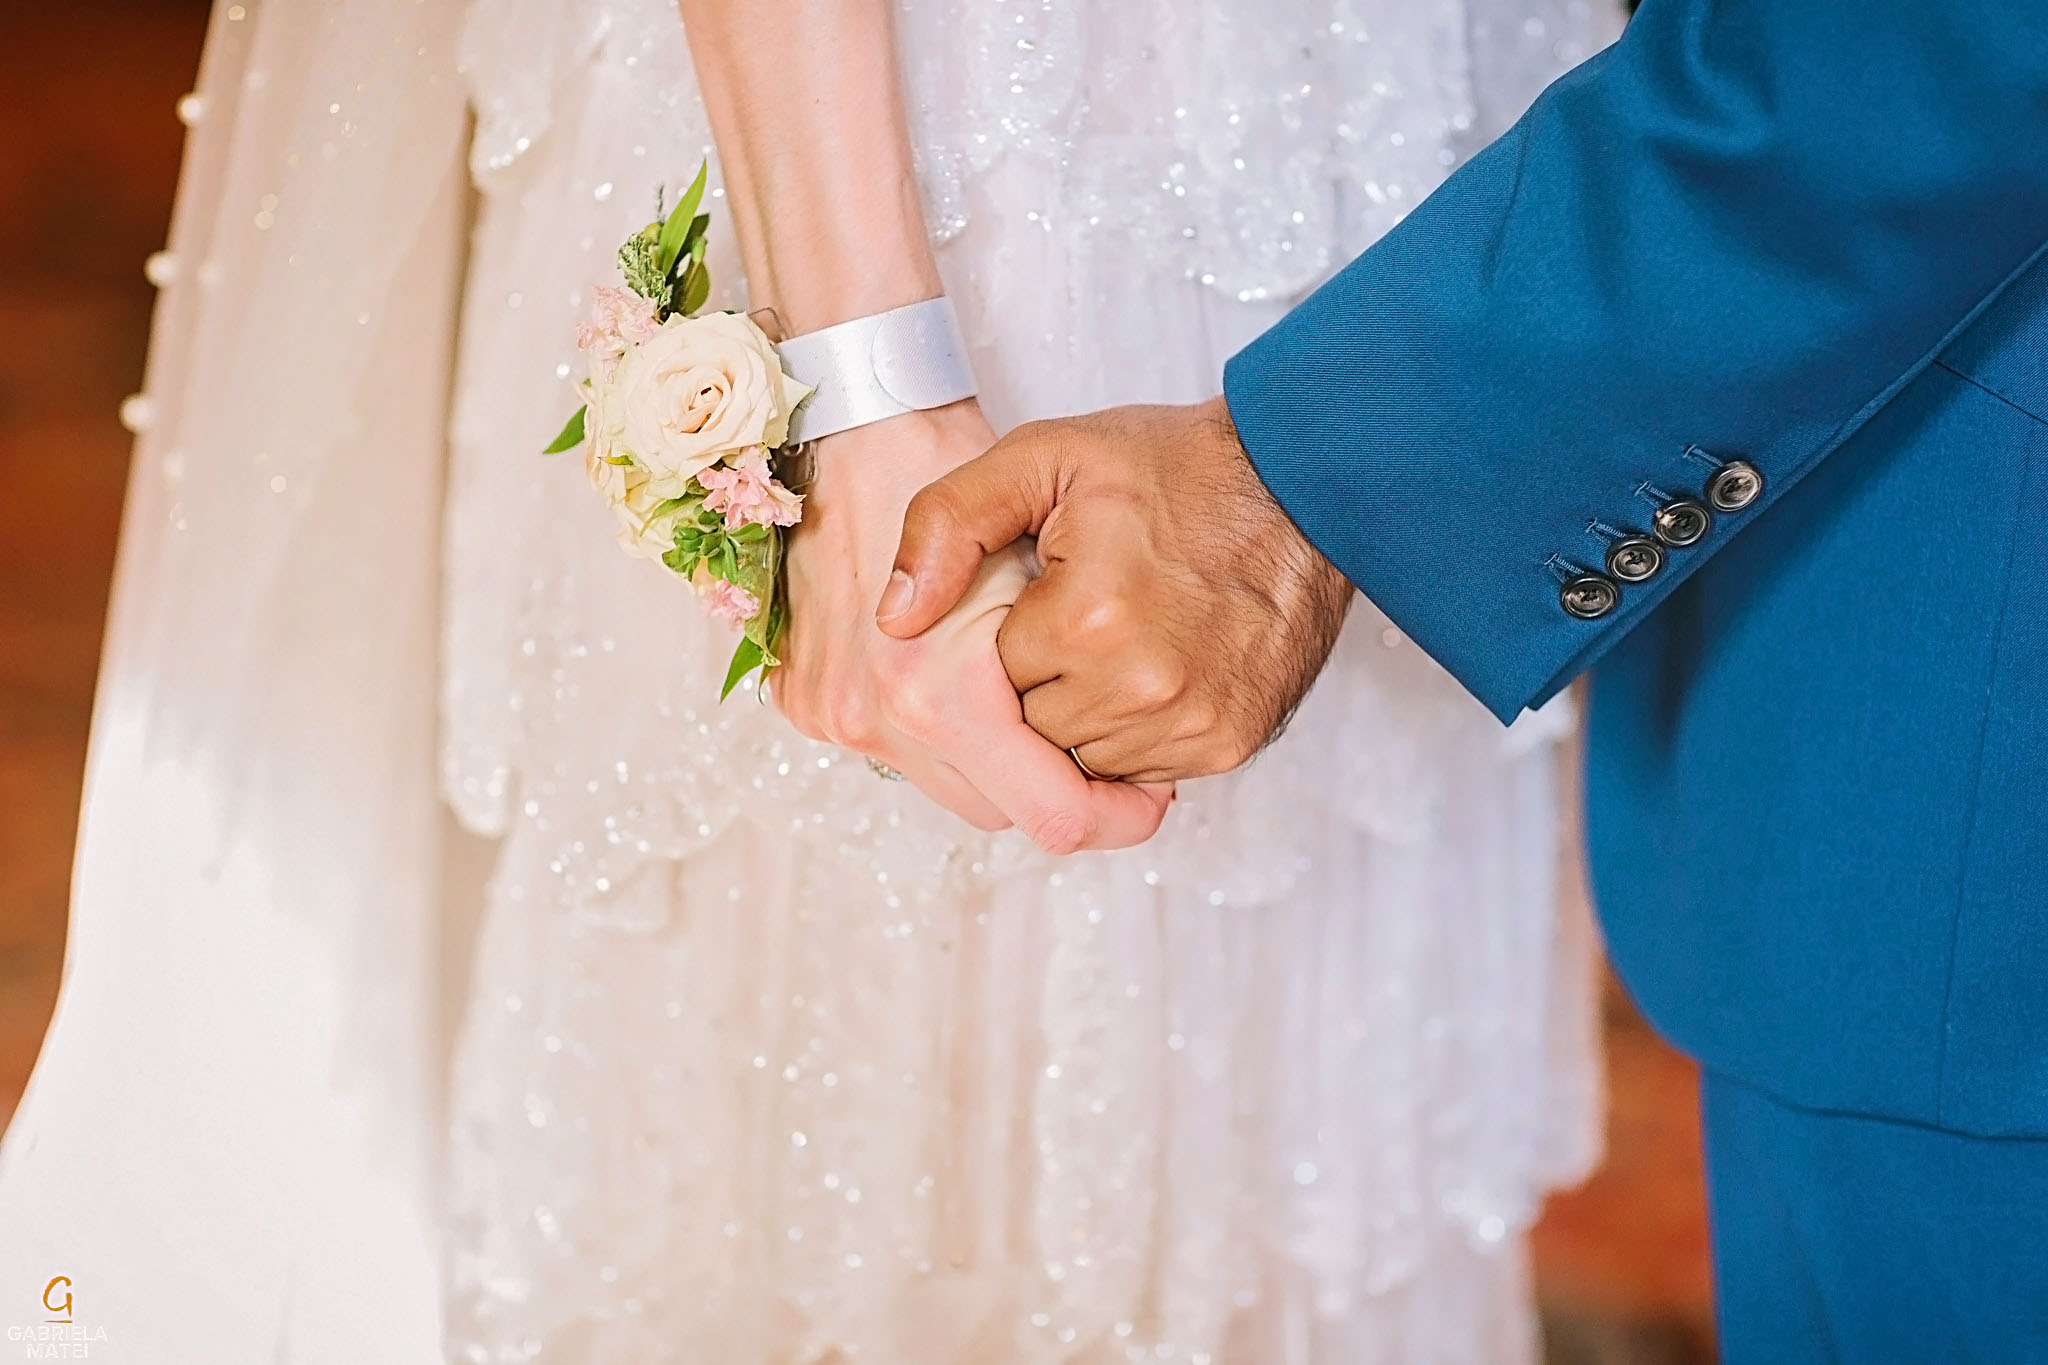 Delicate detail of wedding wrist corsage whilst bride and groom are holding hands